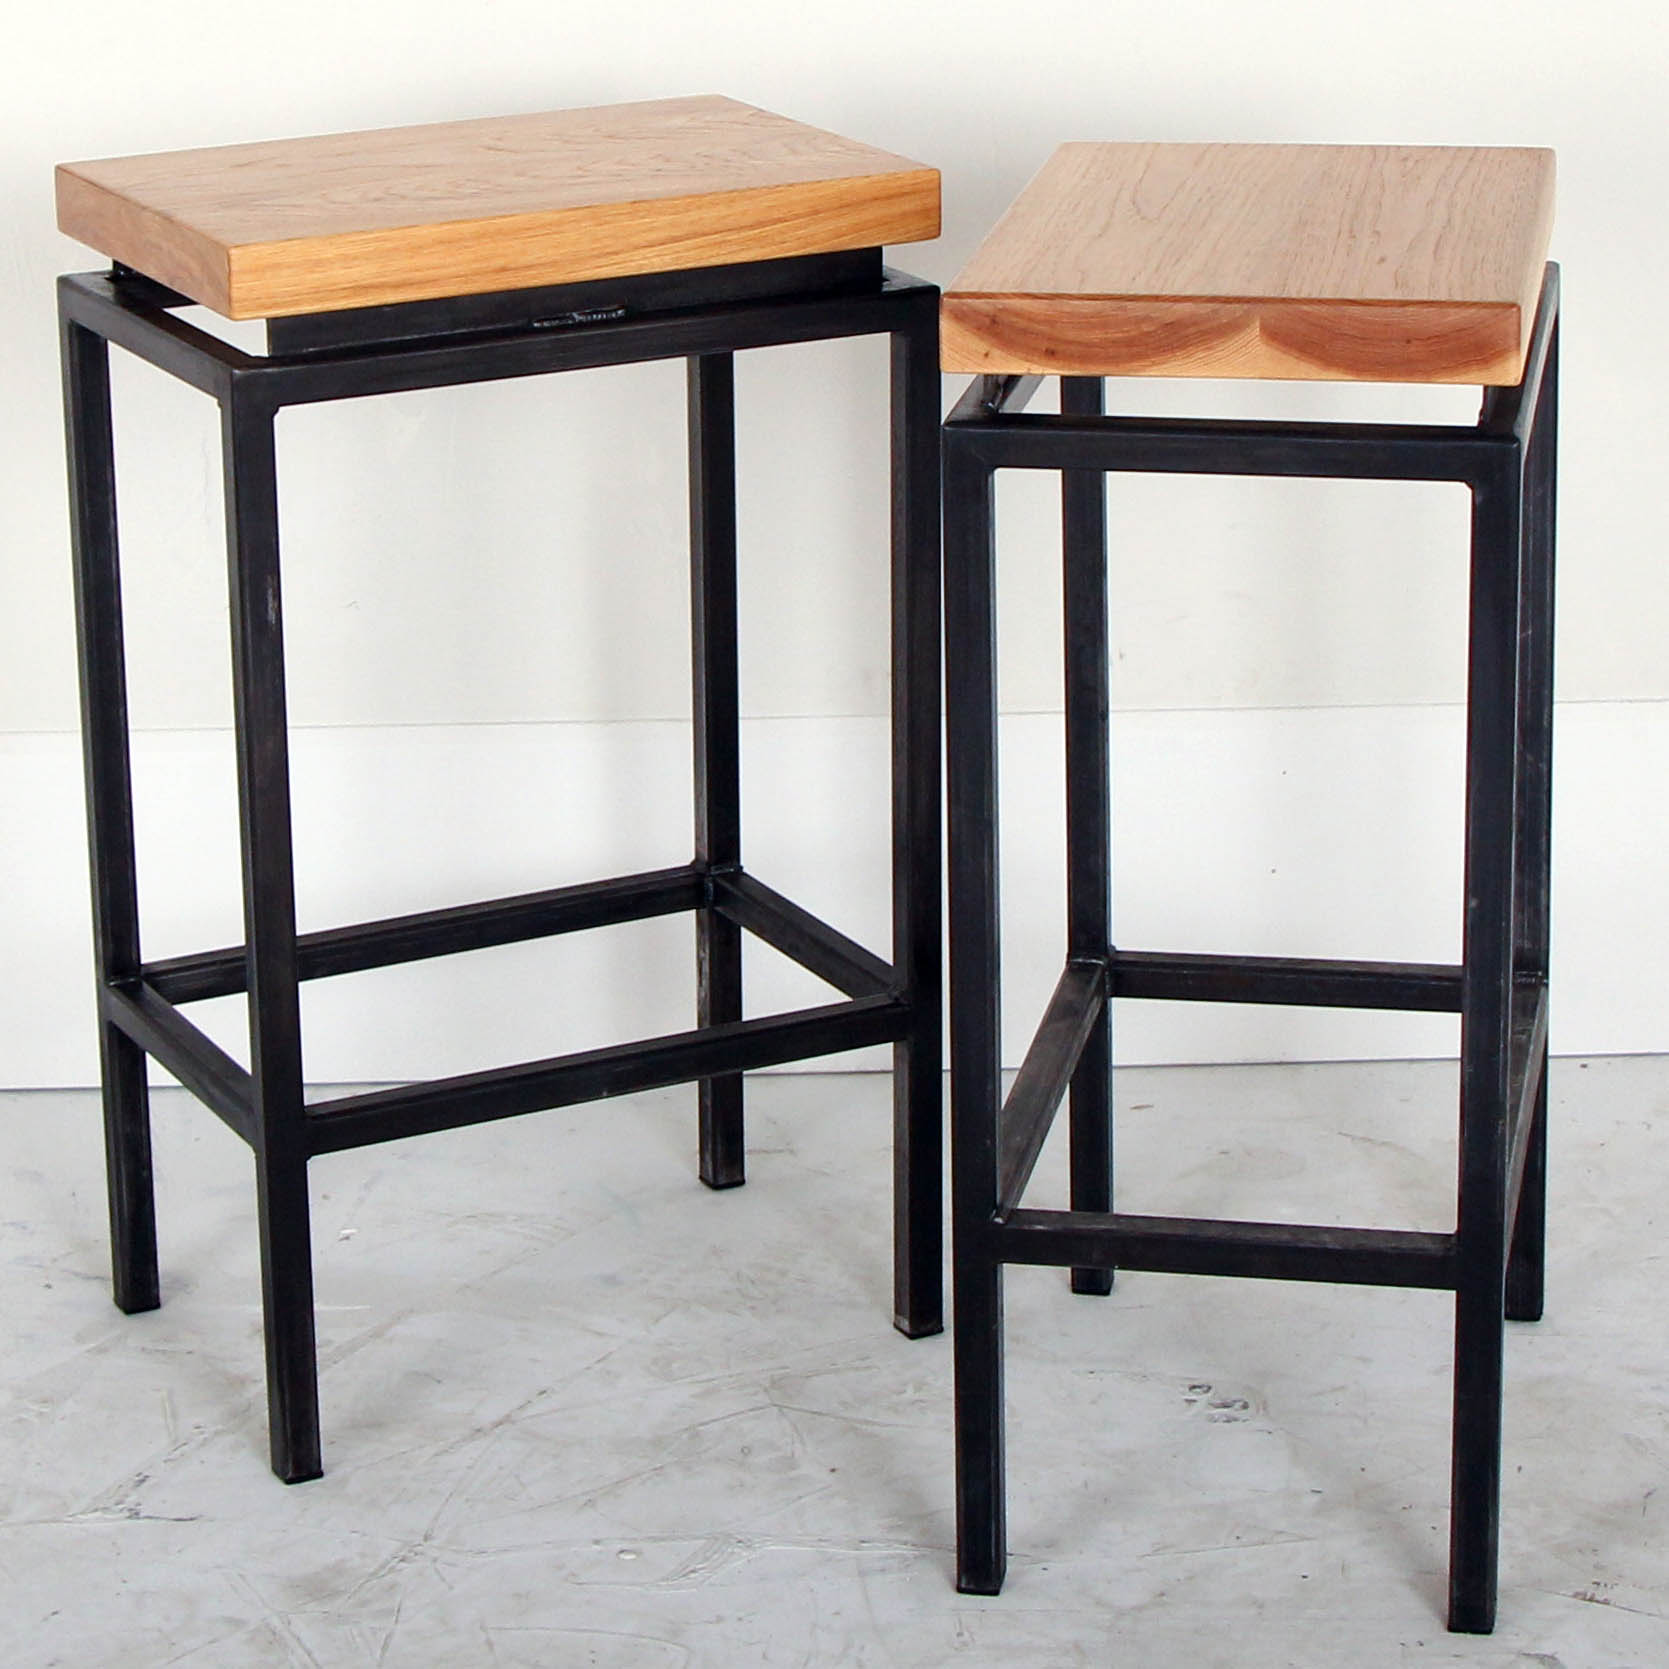 Floating H-Base Pecan Top Barstools